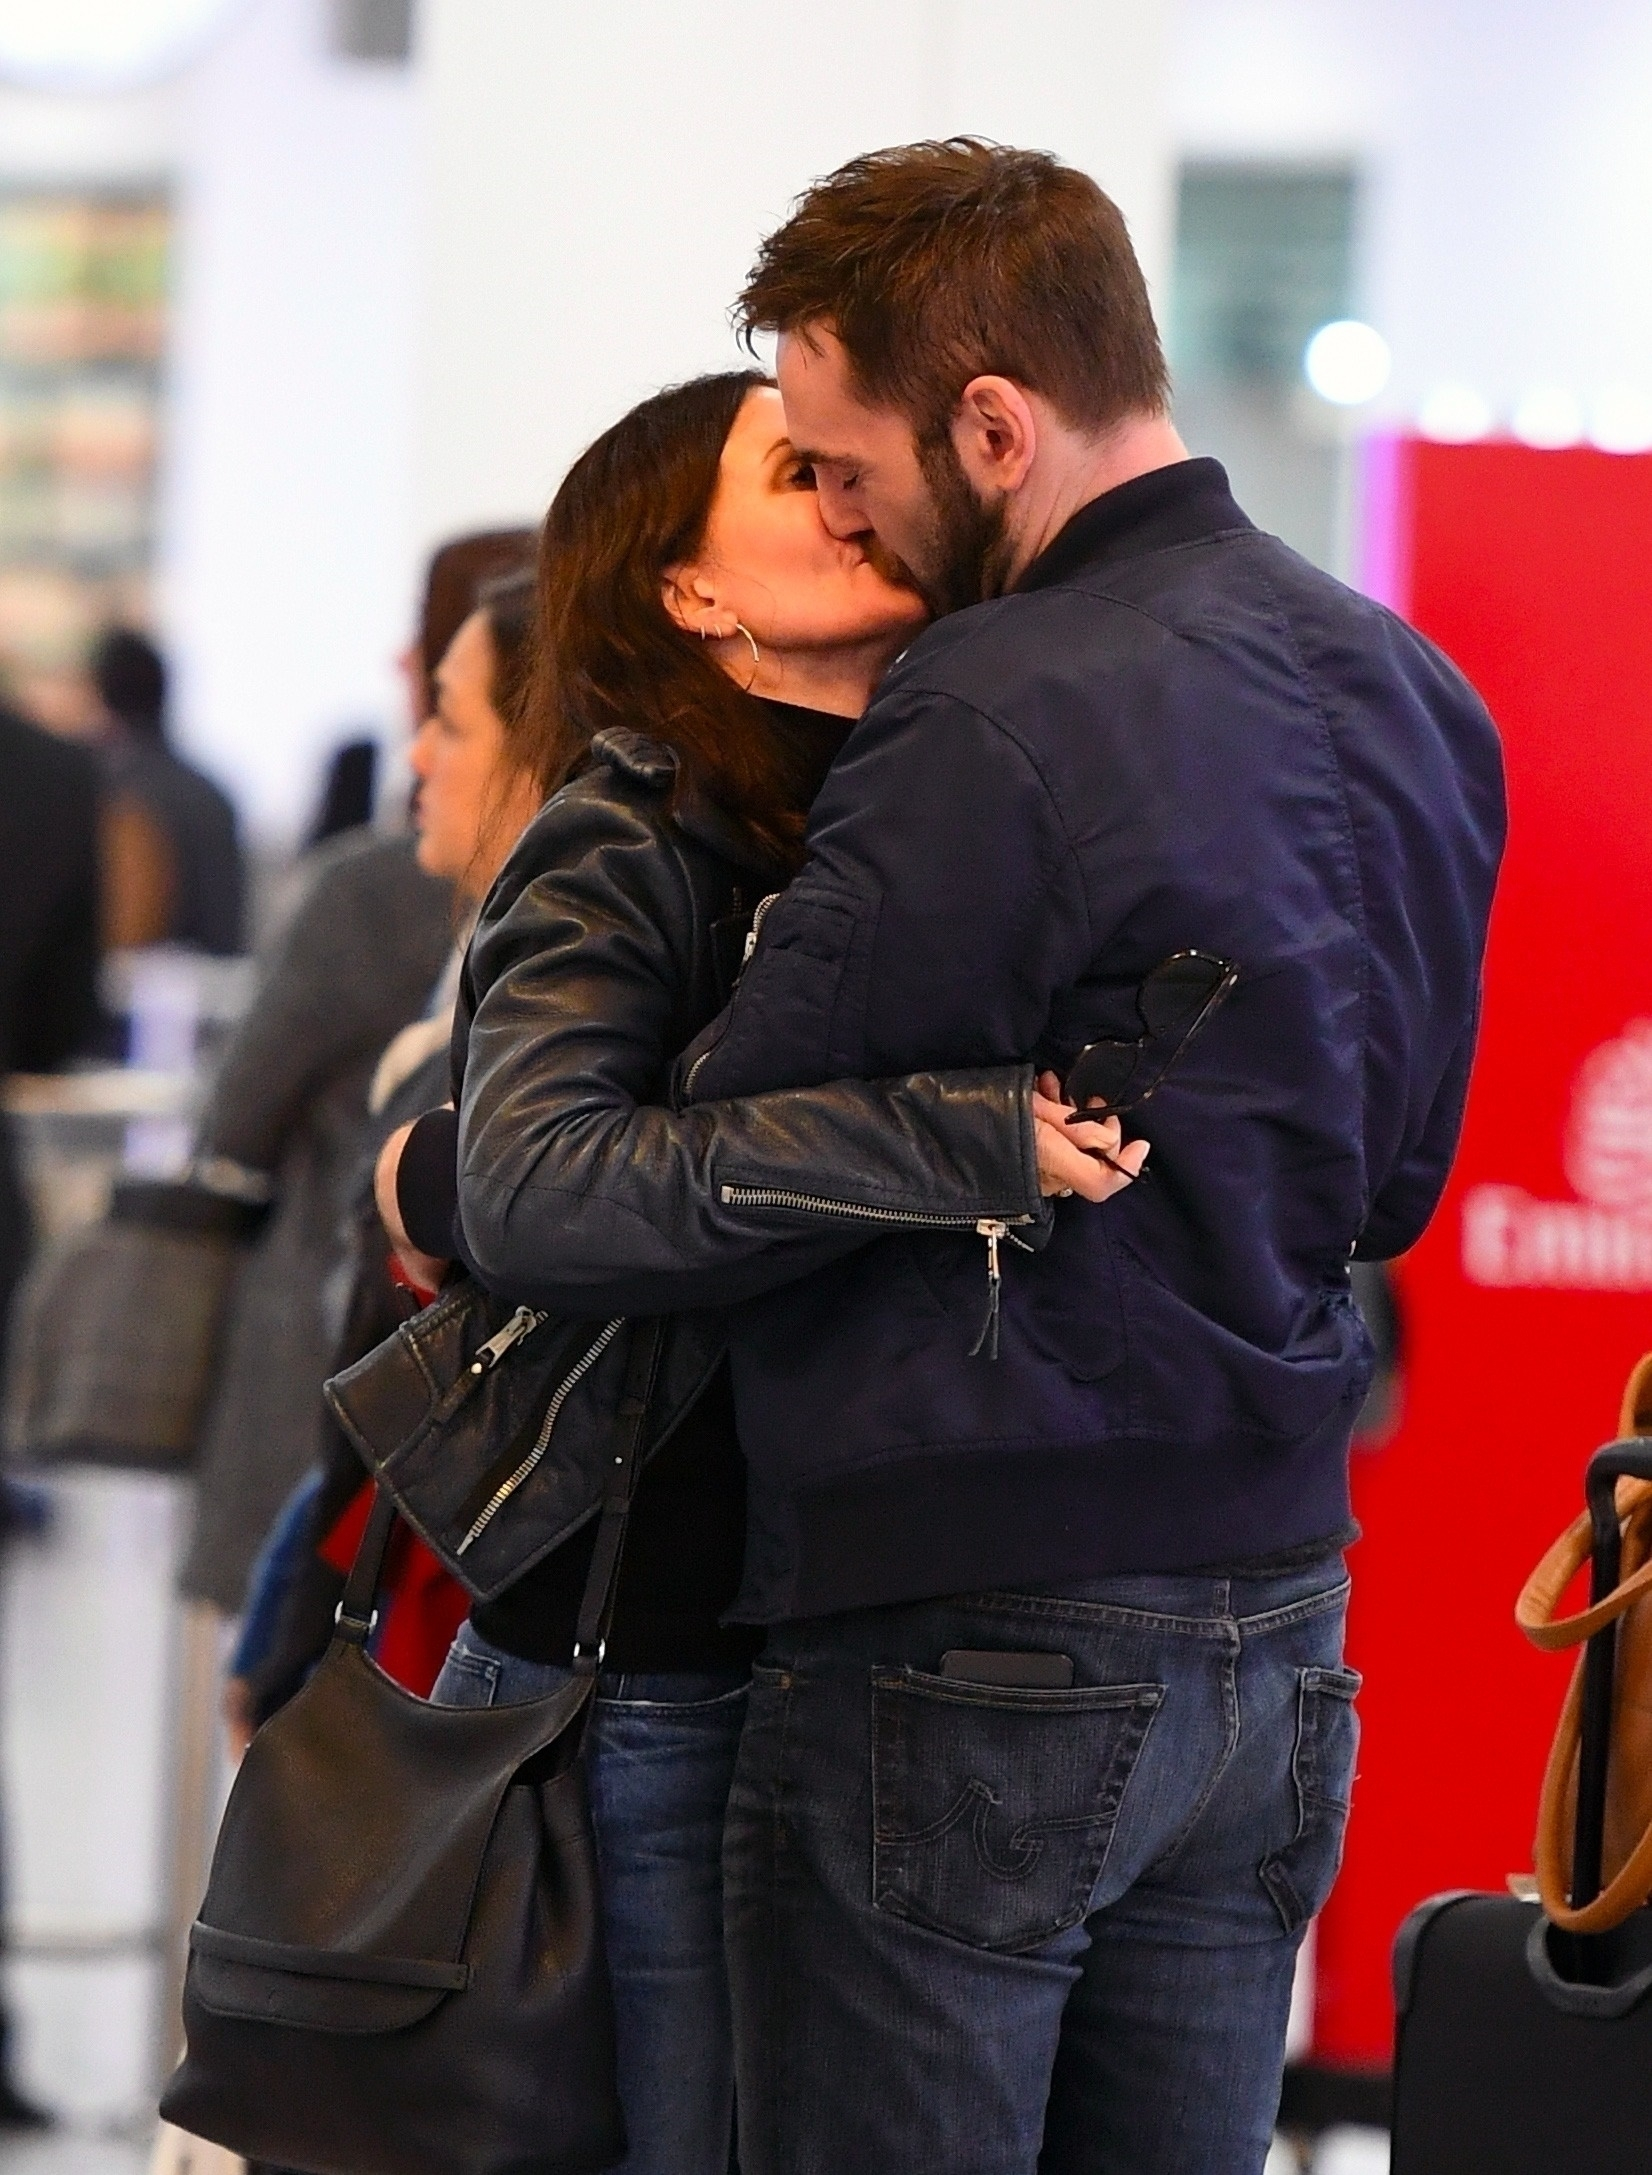 Courteney Cox and her fiance Johnny McDaid packed on the PDA on arrival at Heathrow Airport in London, England on Feb. 17, 2018.